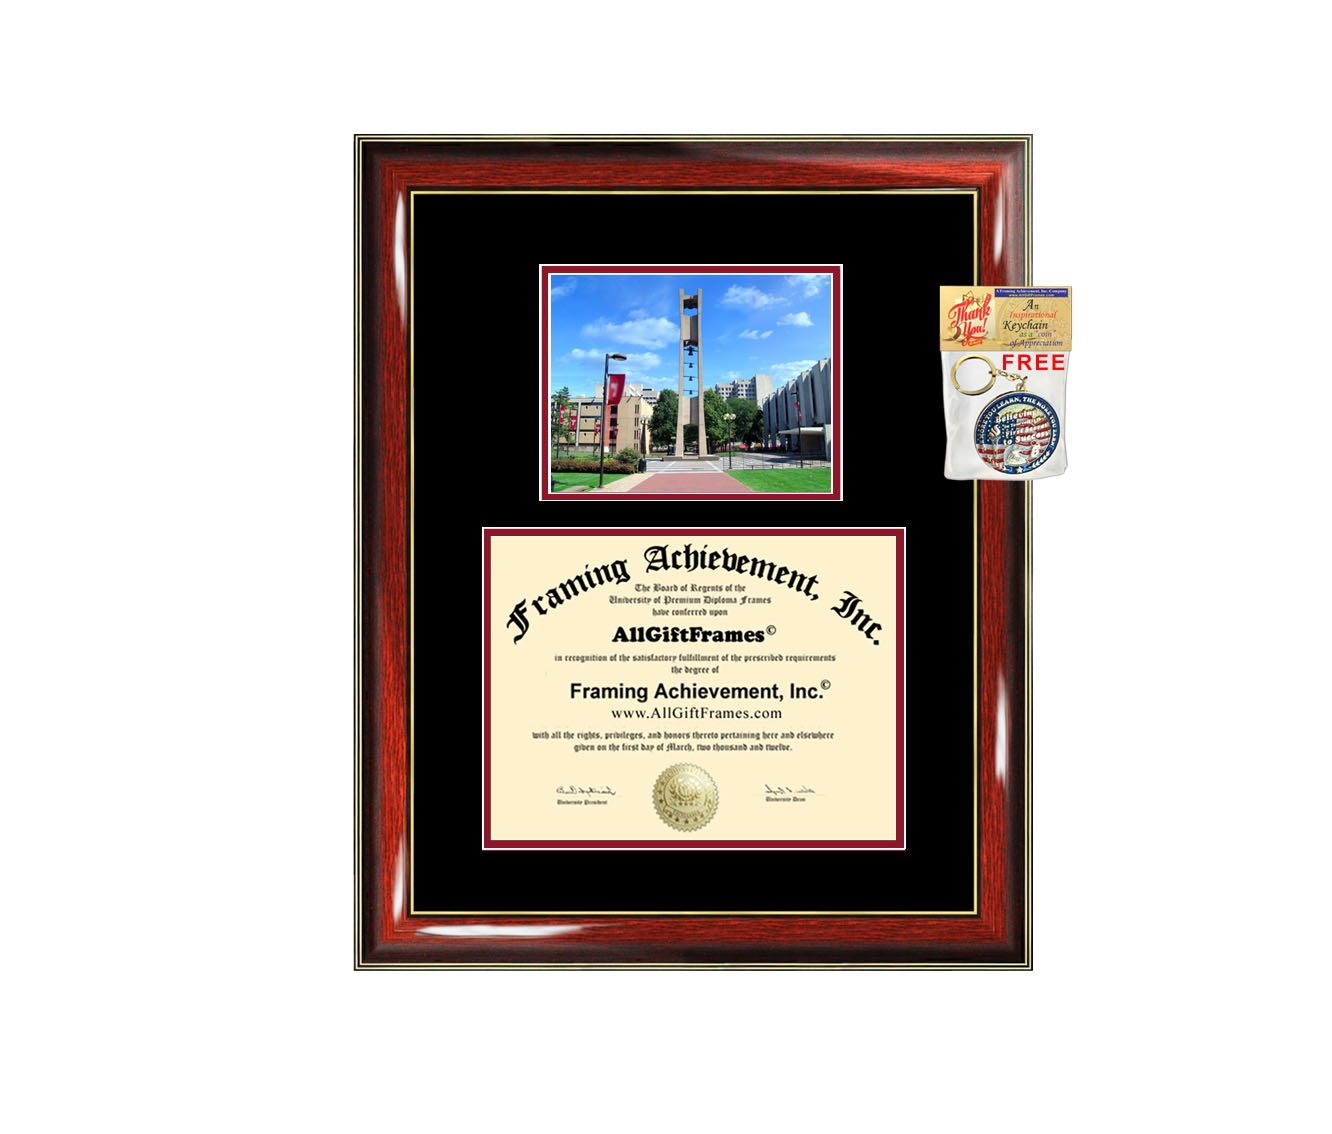 Temple University Diploma Frame Graduation Degree Frames Double Matted College Framing Campus Photo Graduation Gift Temple Degree Certificate Collegiate Document Holder Plaque